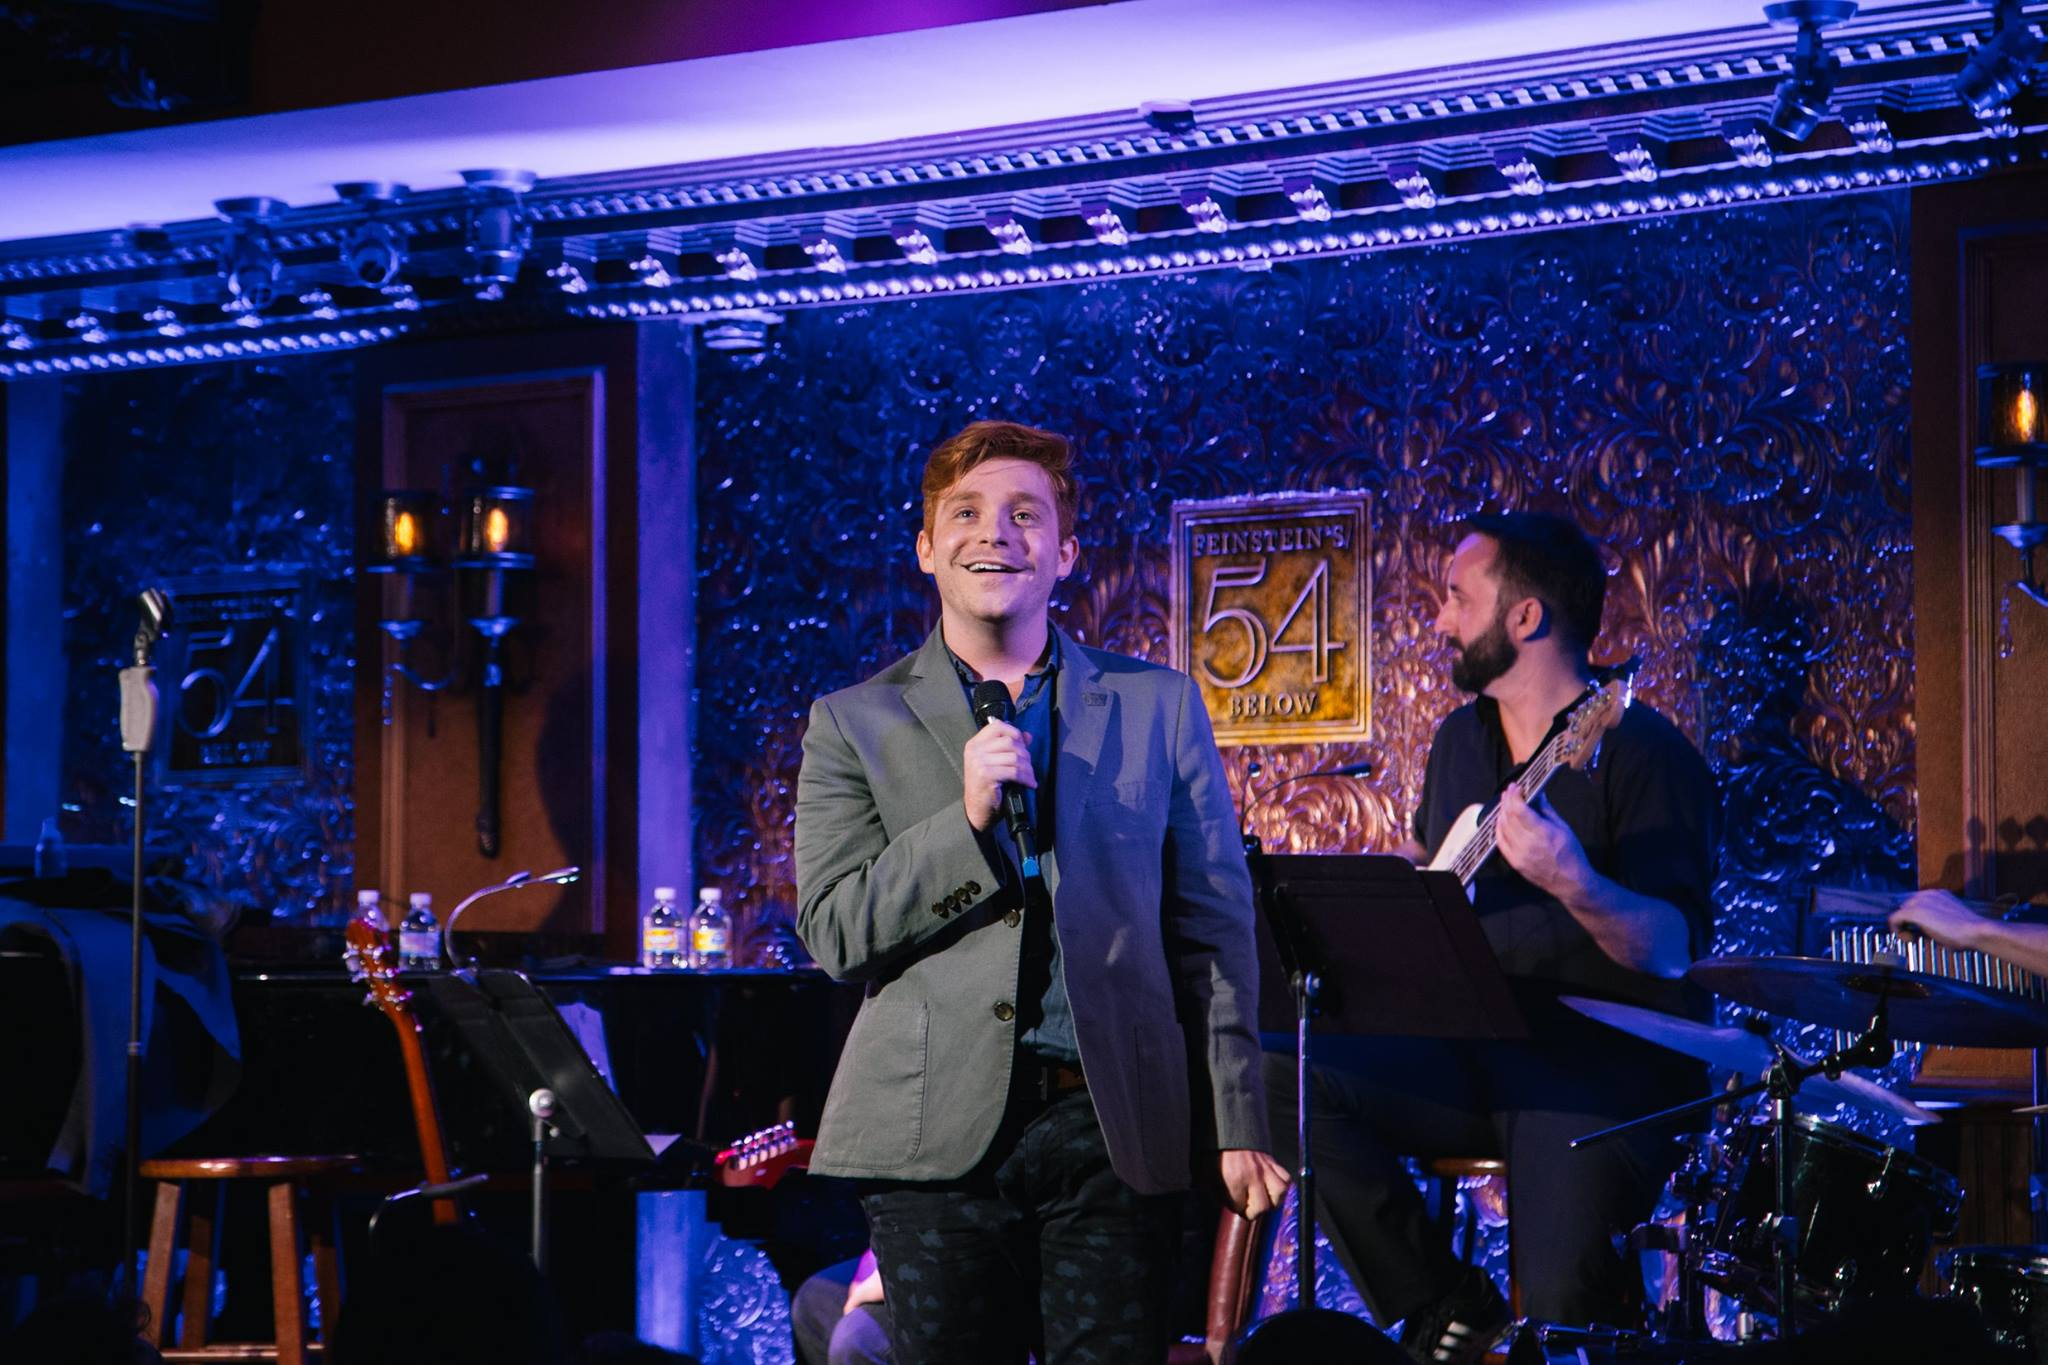 Feinstein's/54Below